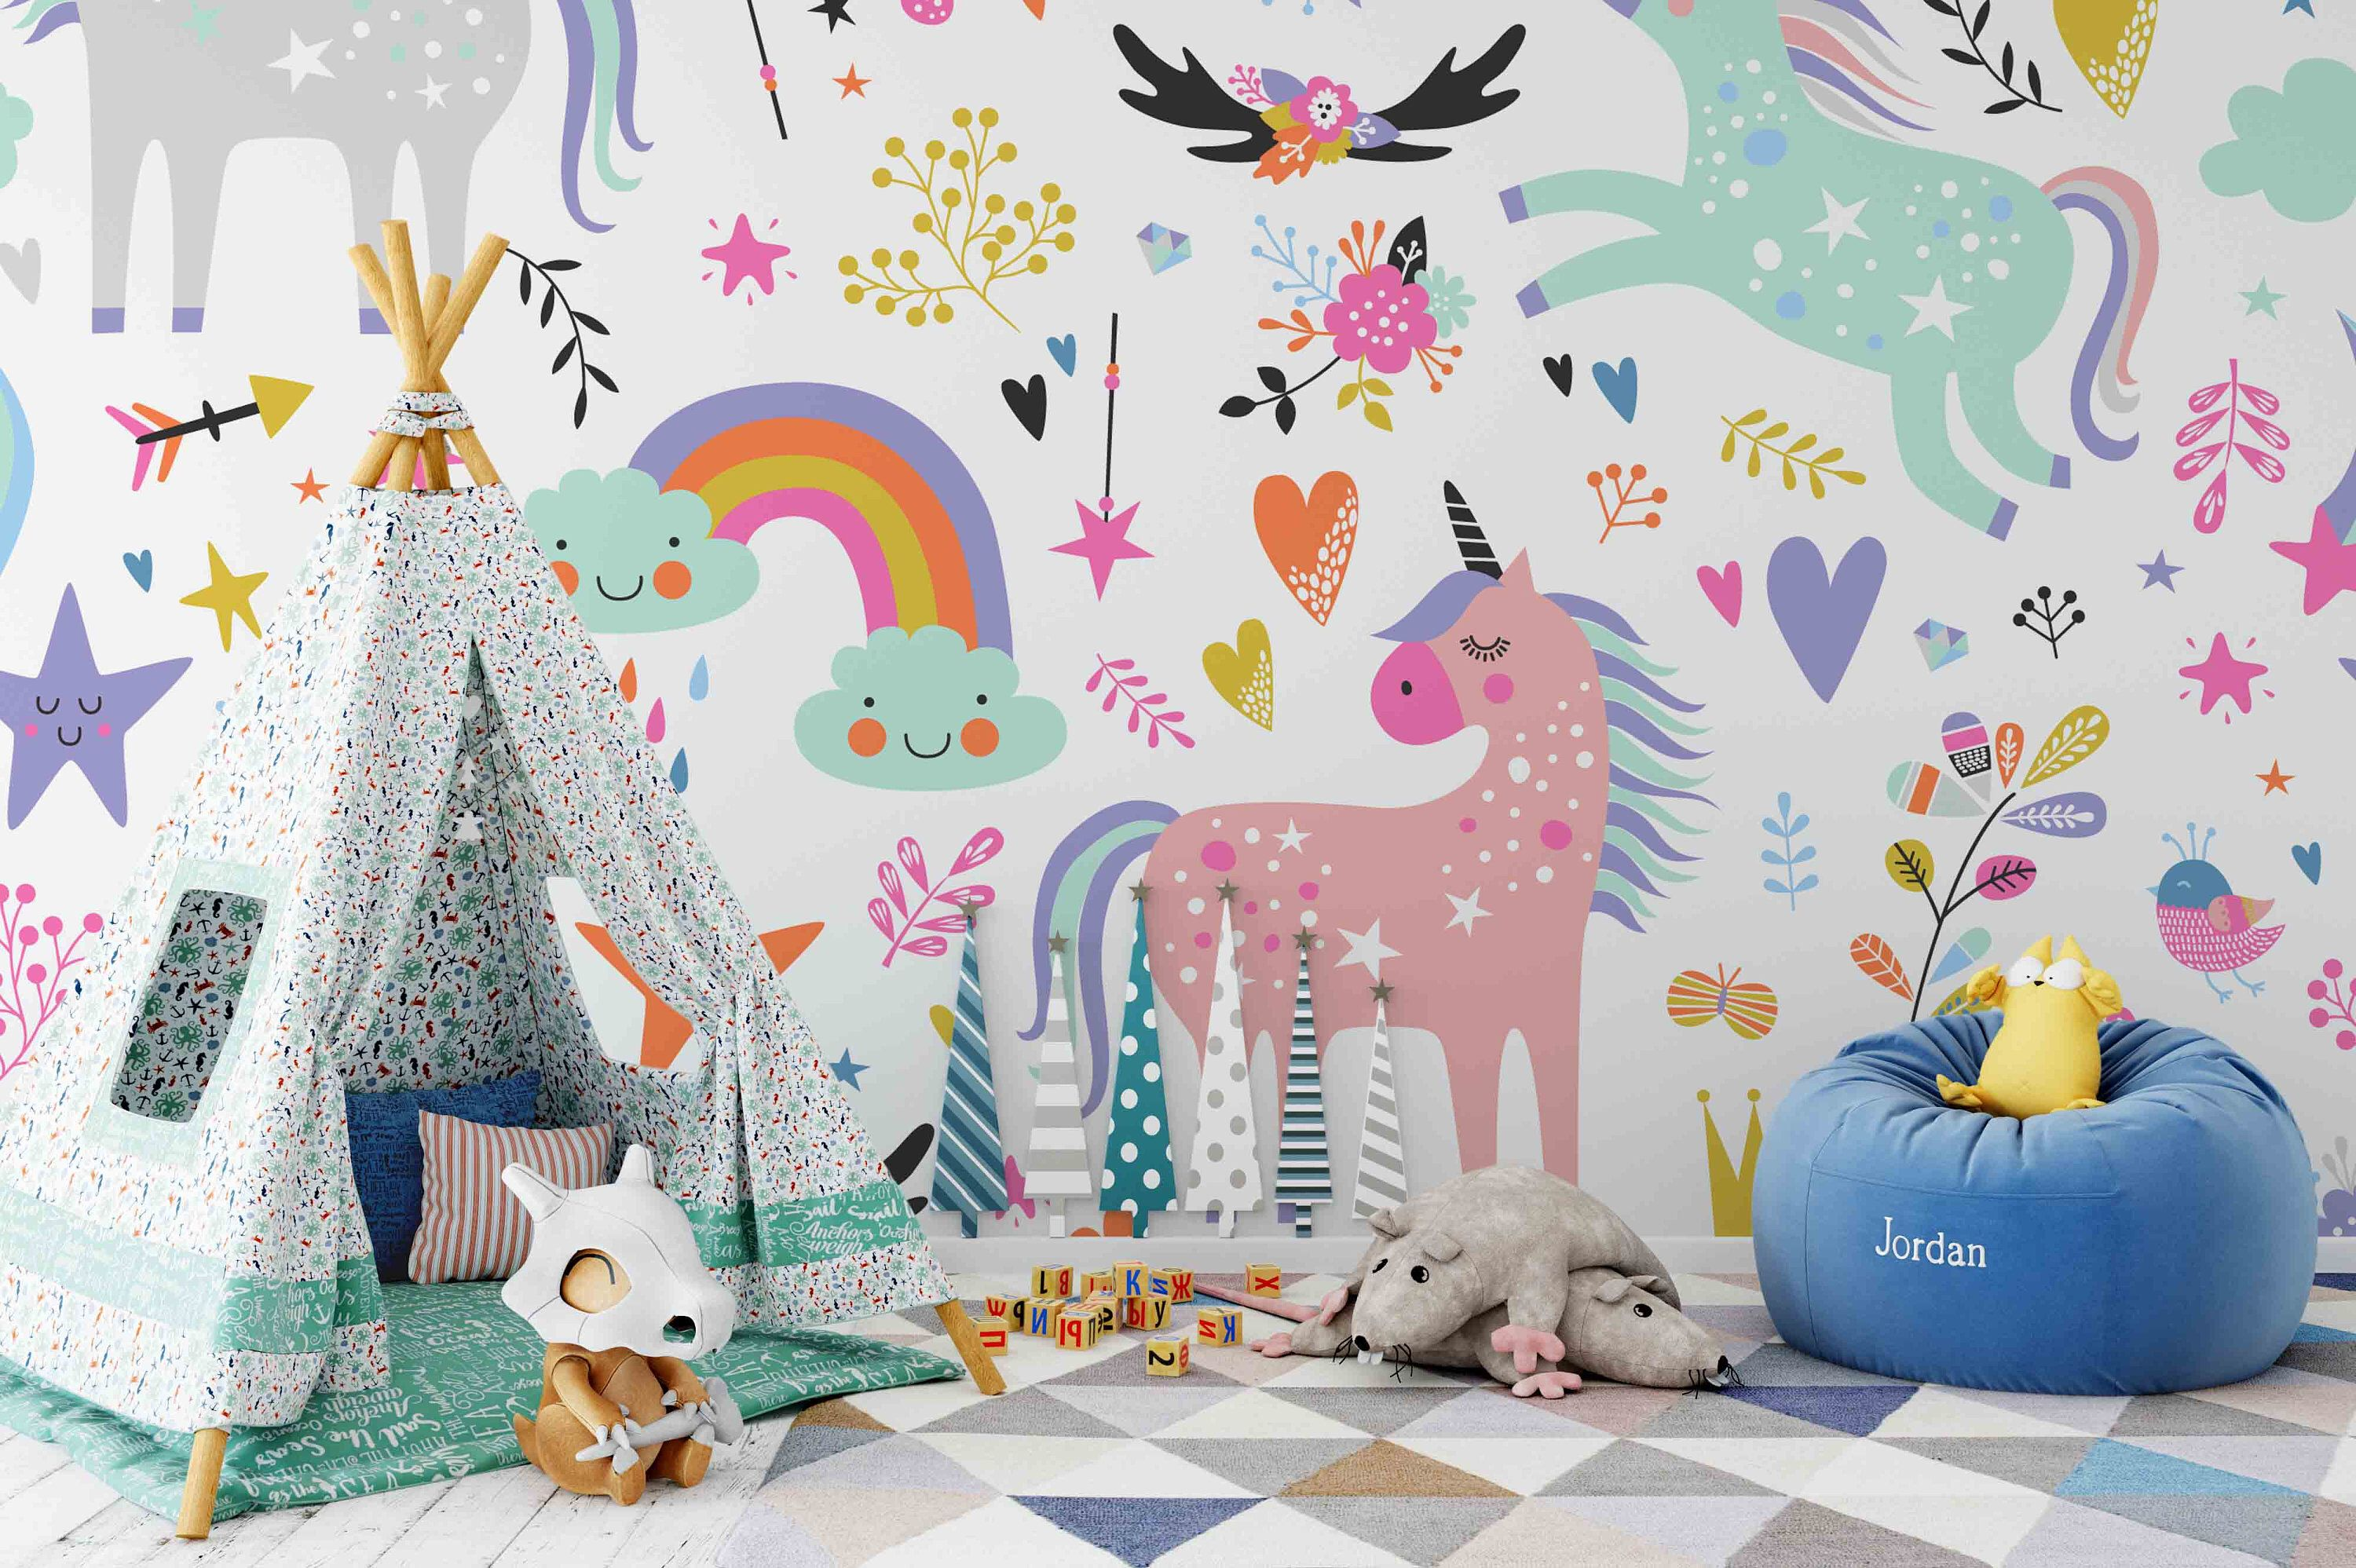 3d Unicorn Removable Wallpaper Peel And Stick Wall Mural Floral Wall Art Wall Decal Kids Nursery Wall S Nursery Wall Stickers Playroom Mural Kids Wall Decals